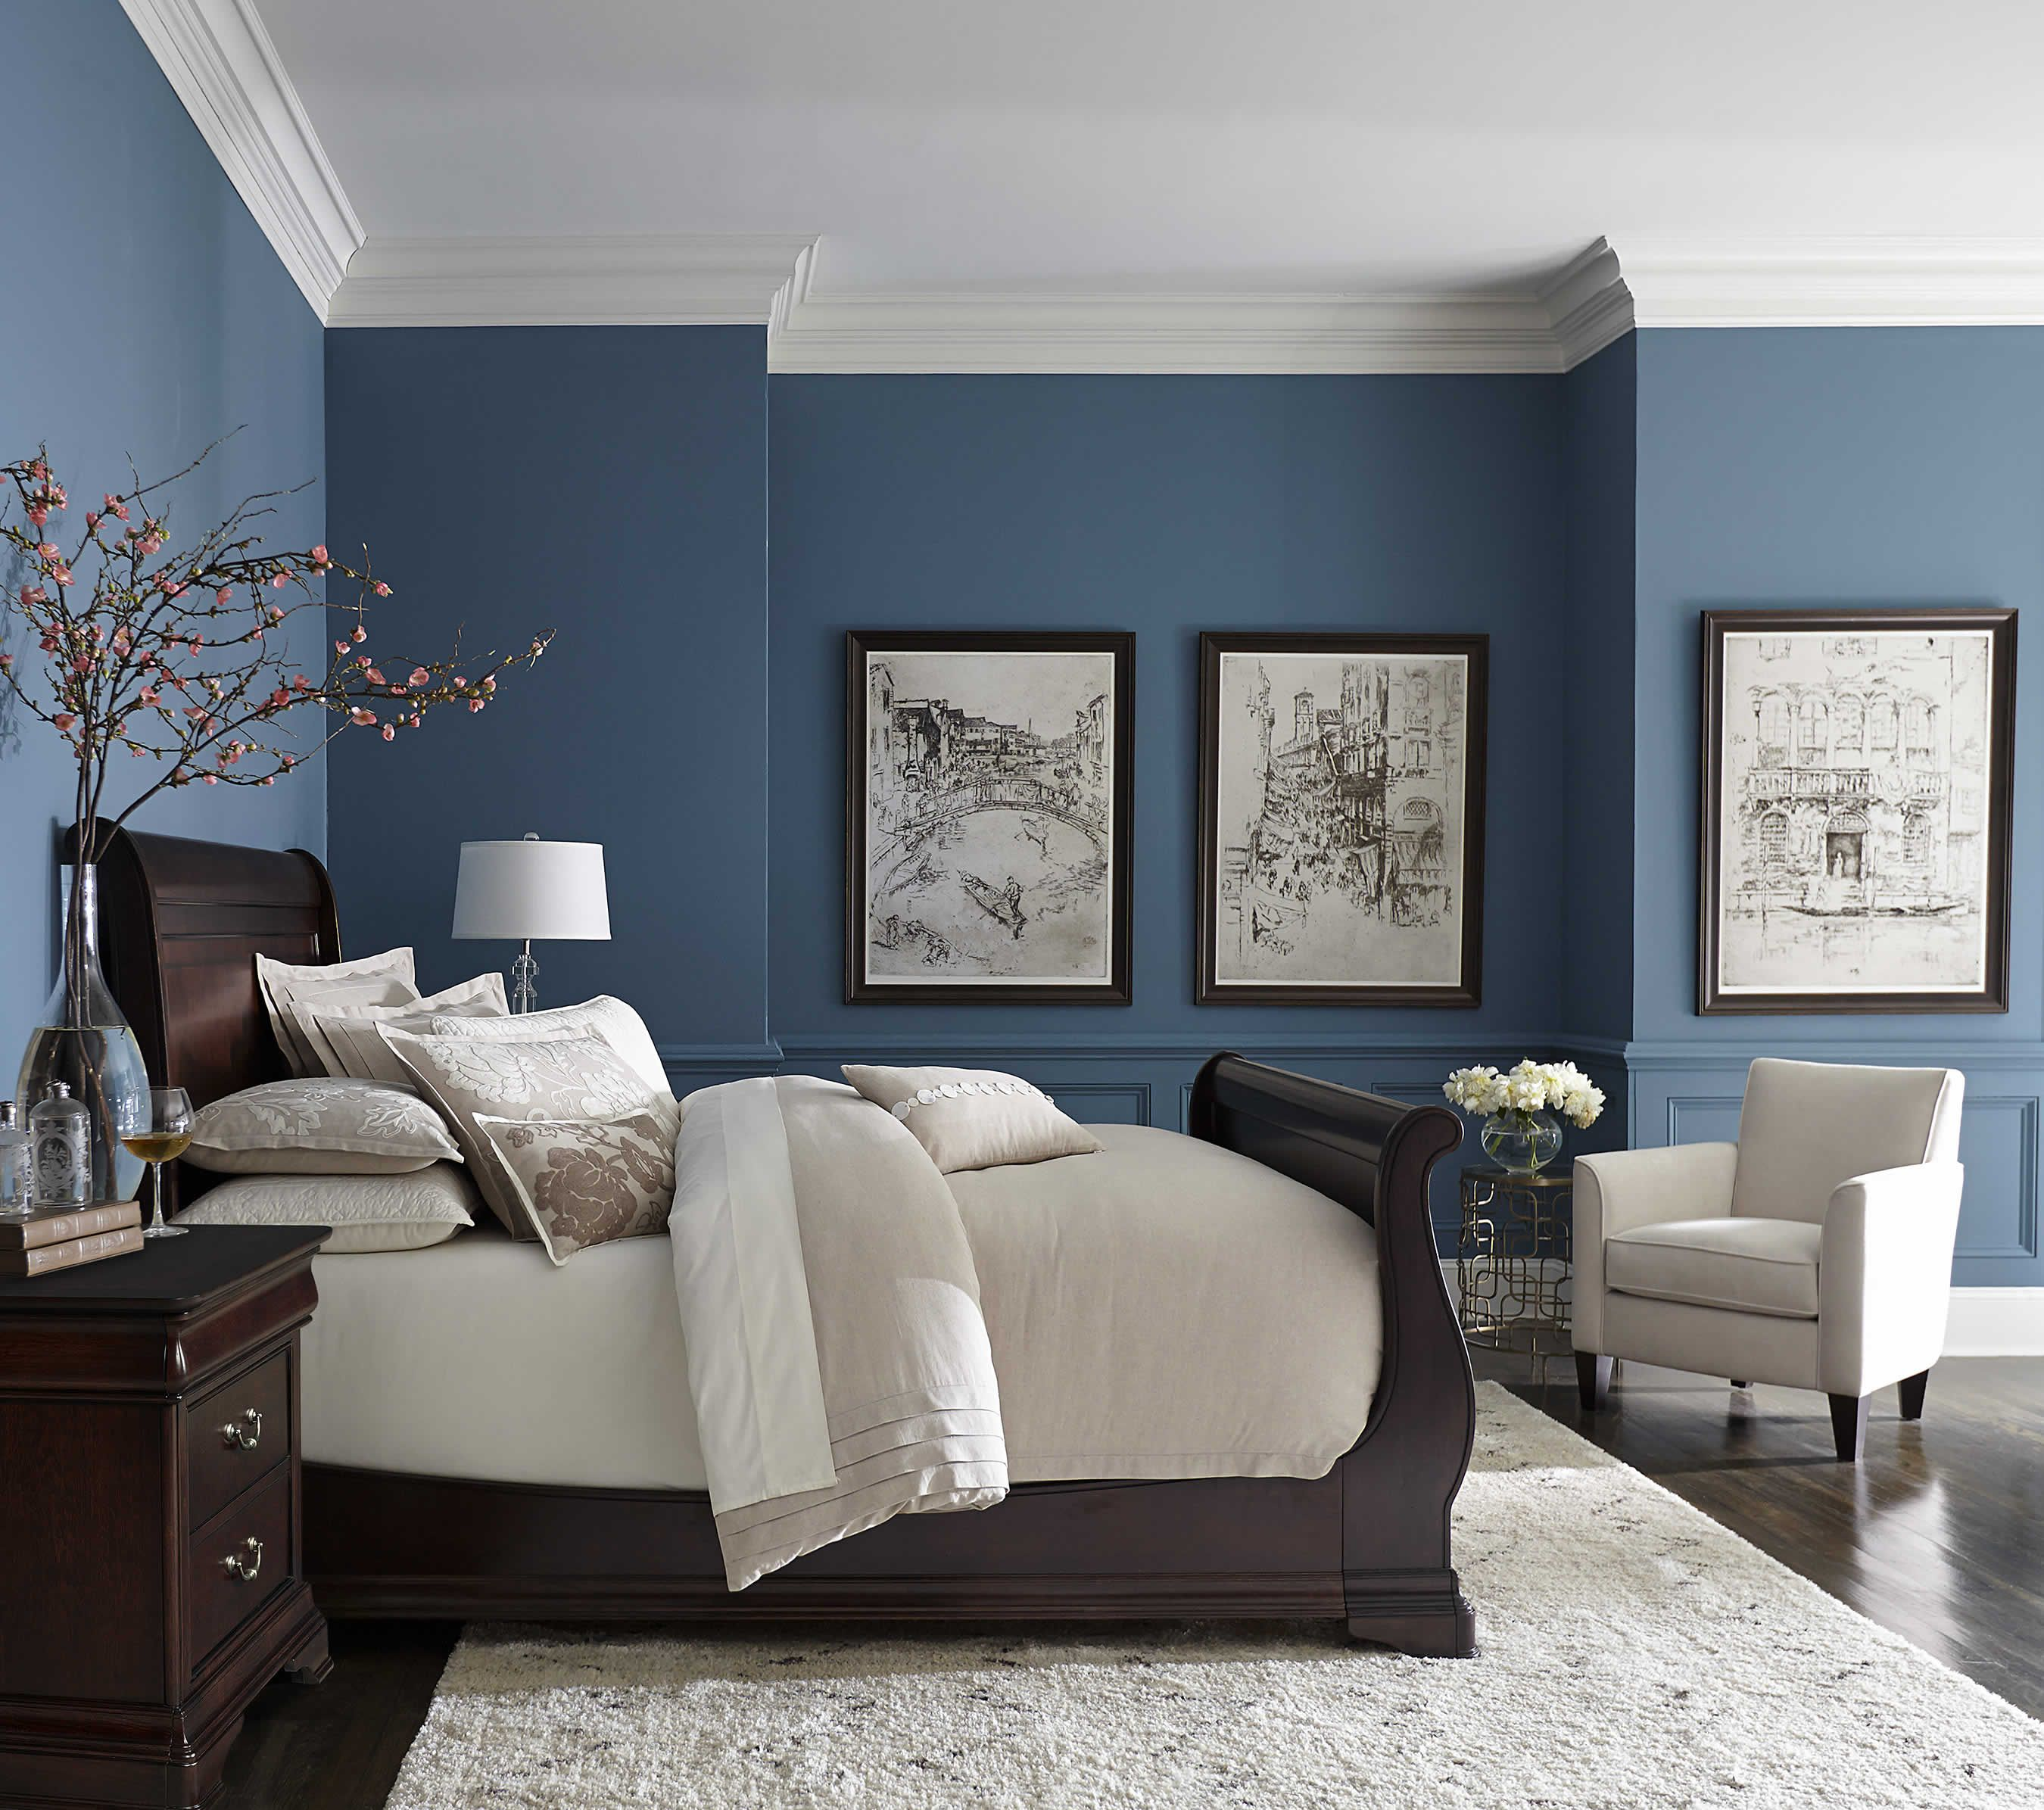 Bedroom Color For Small Room Pretty Blue Color With White Crown Molding Home In 2019